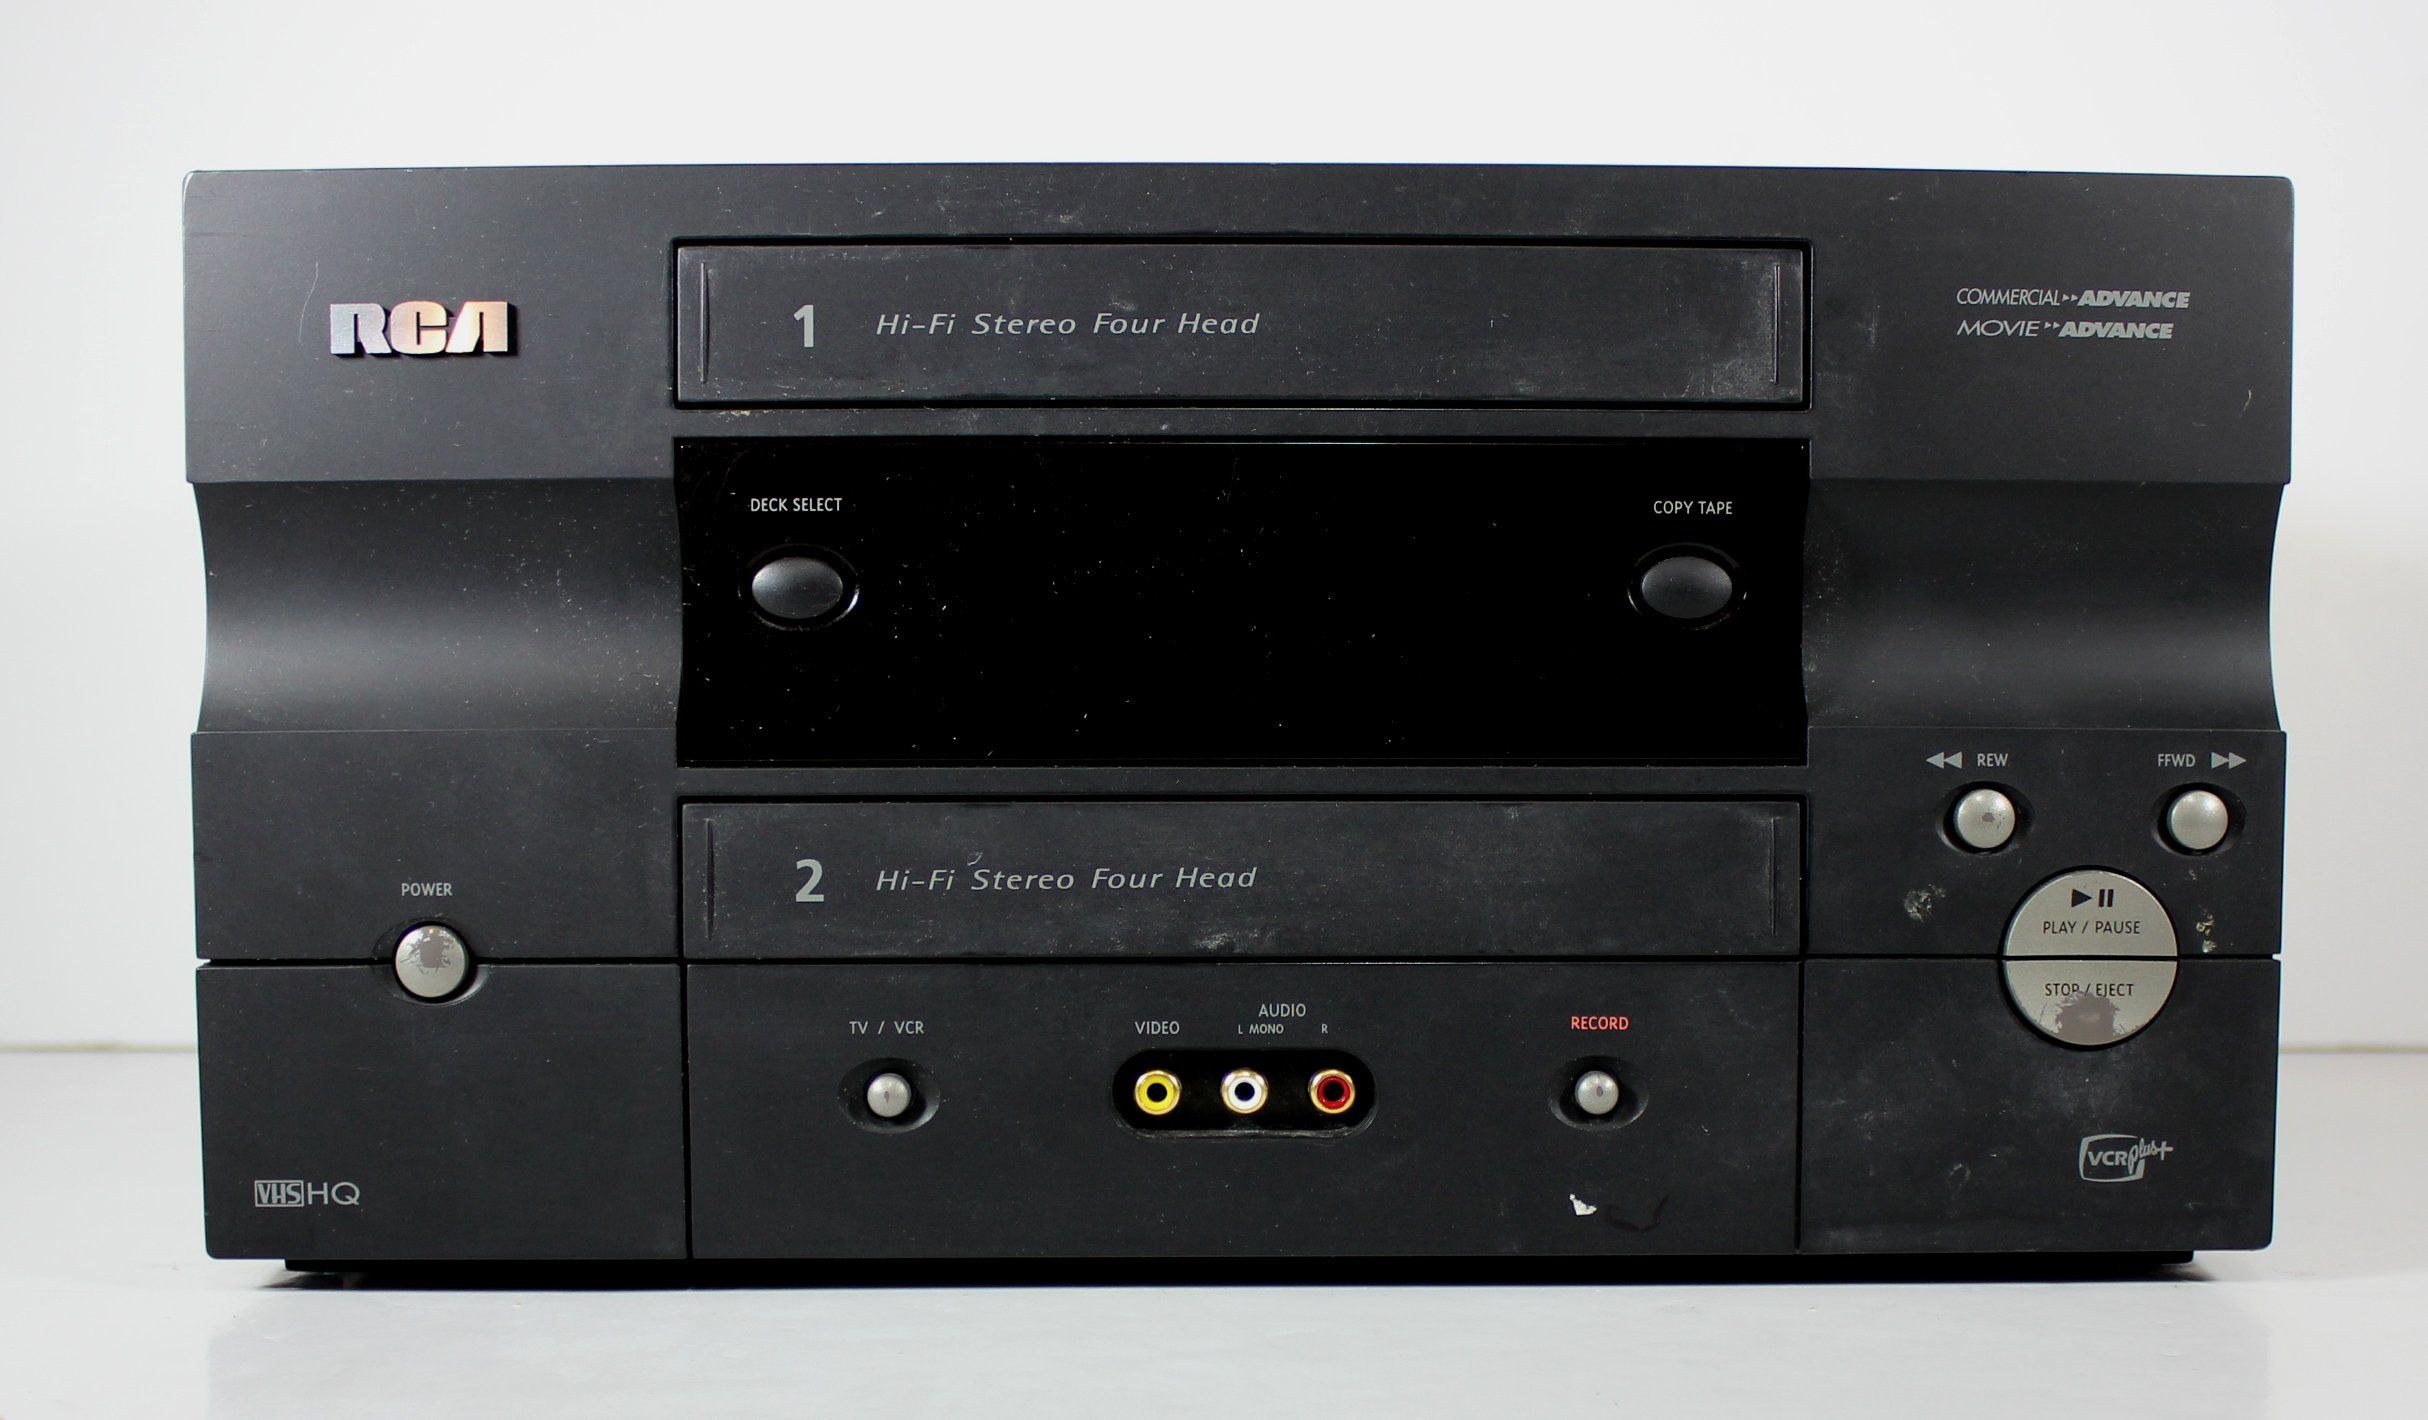 Rca Vrd120hf Vcr Double Cassette Video Recorder Player Rca Cassette Recorder Cassette